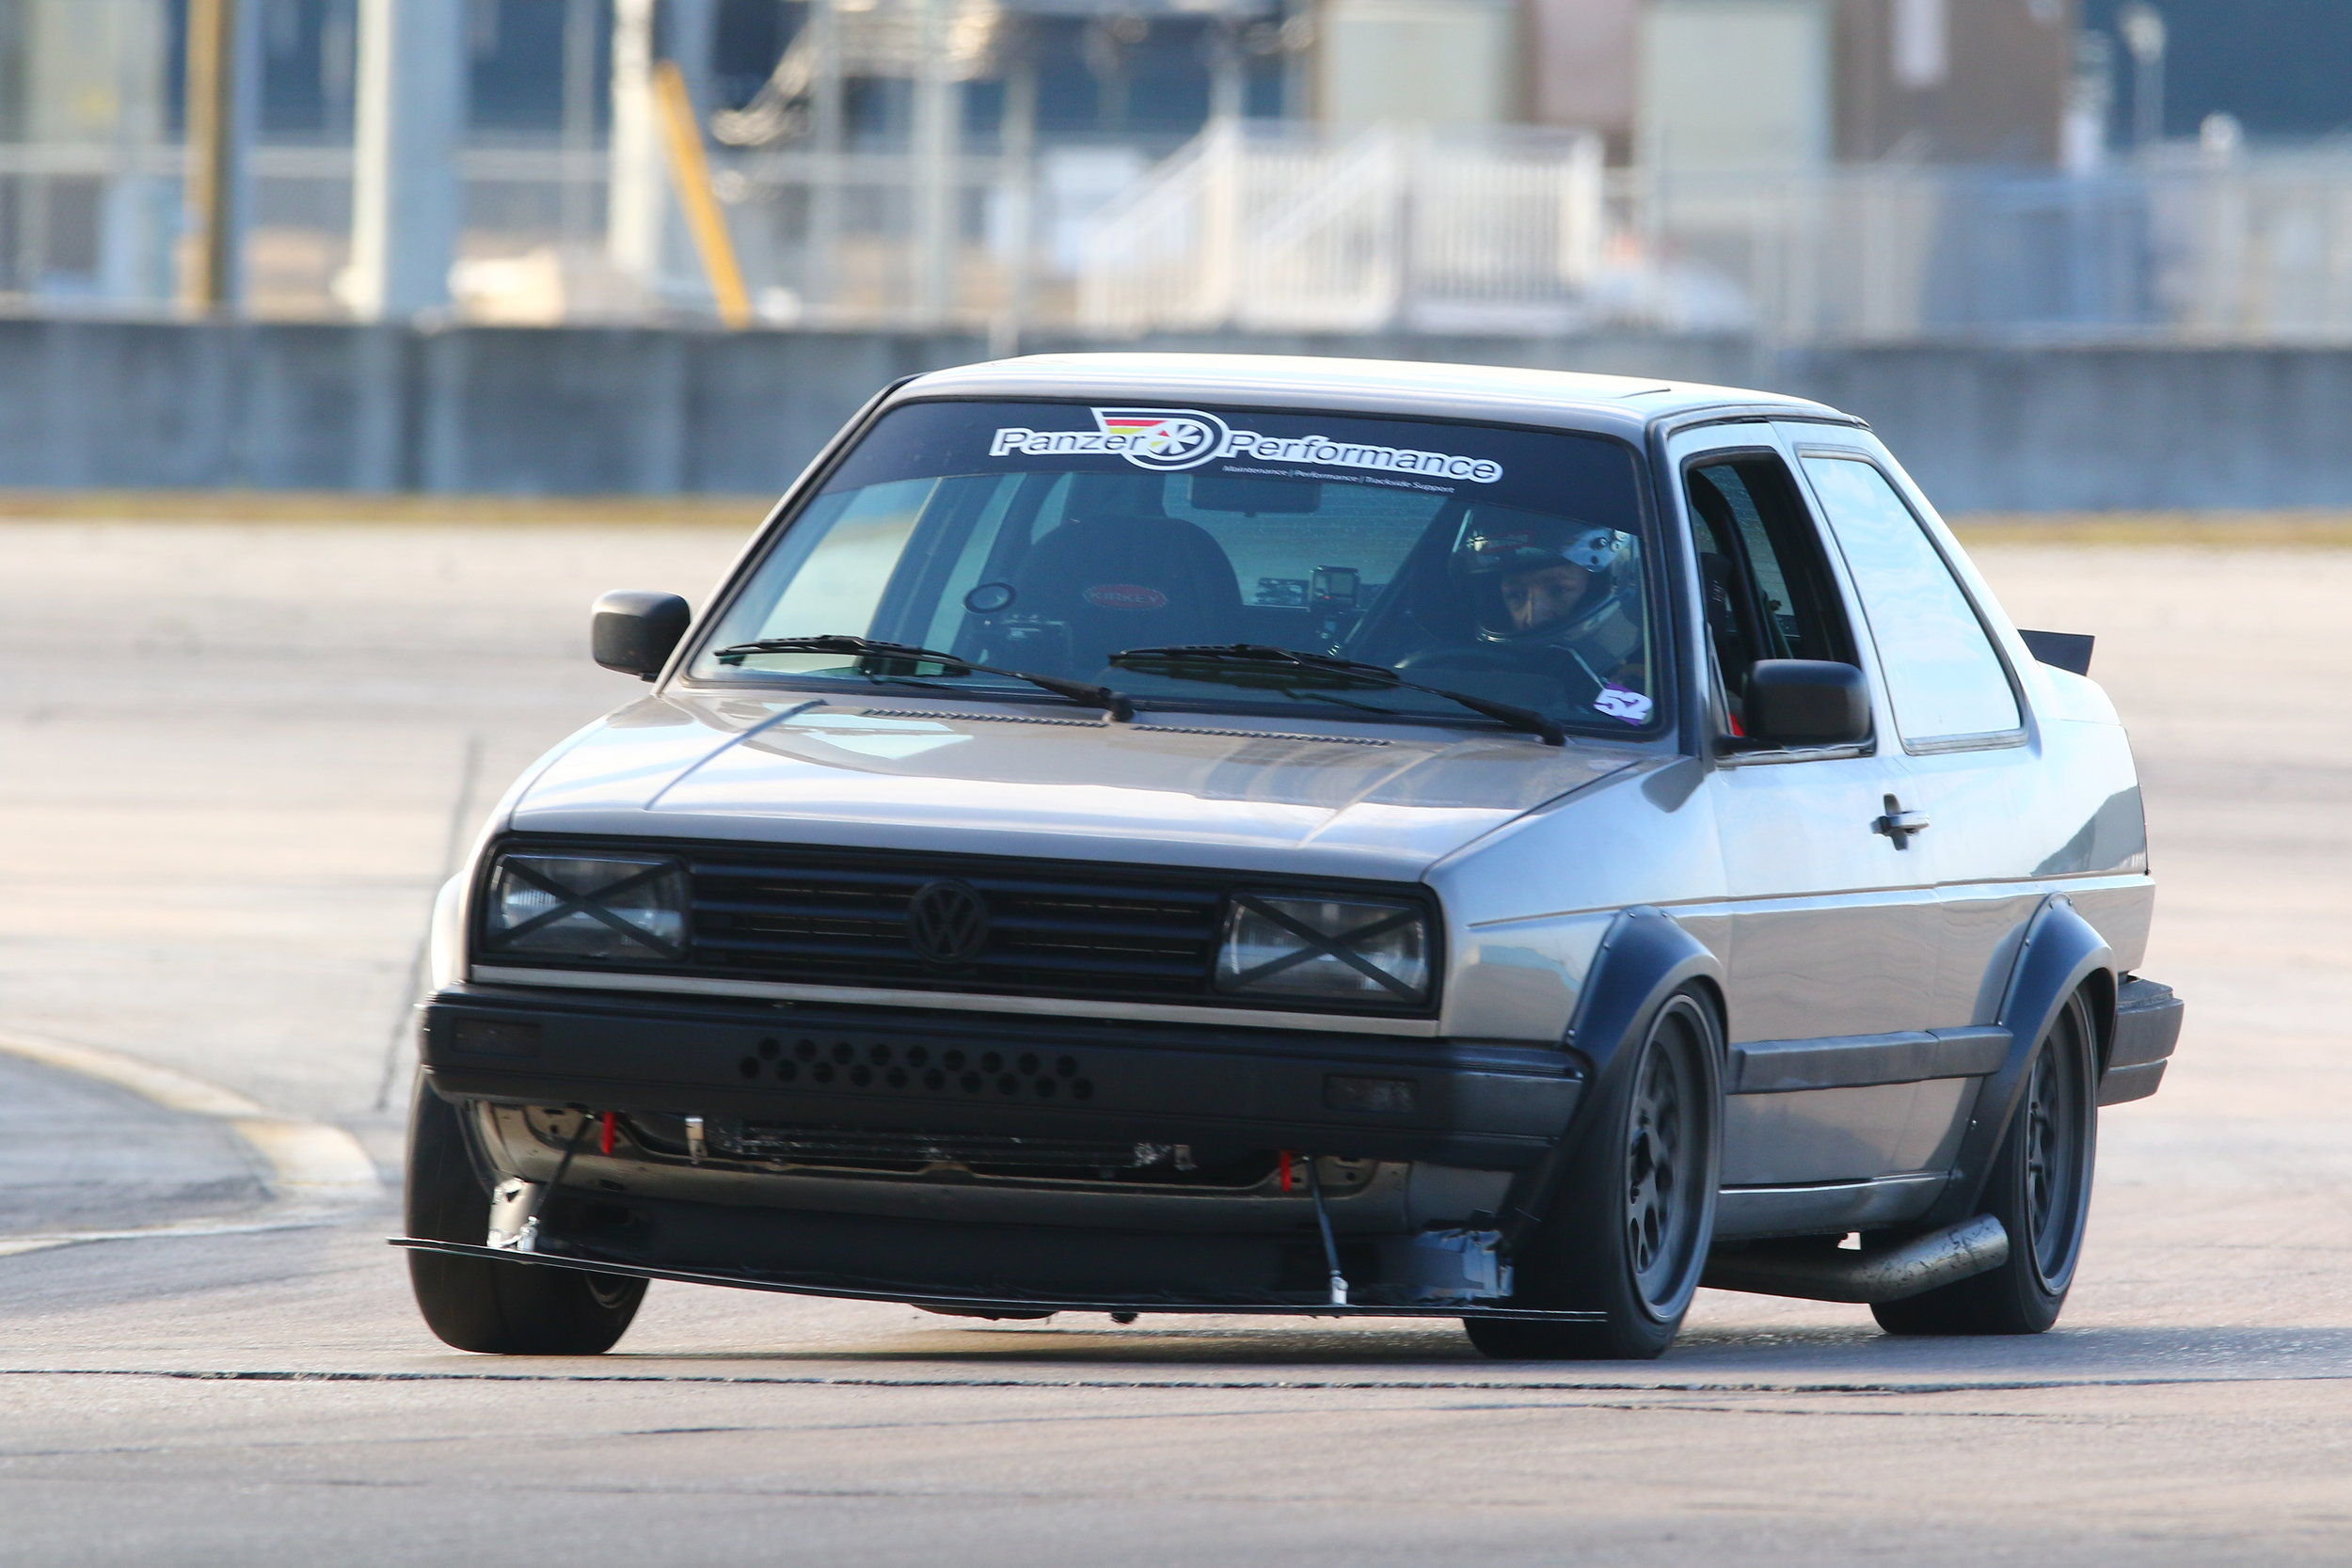 Tom's Jetta Coupe  Modified over many years, and now purely a track day machine. This Jetta Coupe has 300 hp from its turbocharged engine, many suspension and brake upgrades.